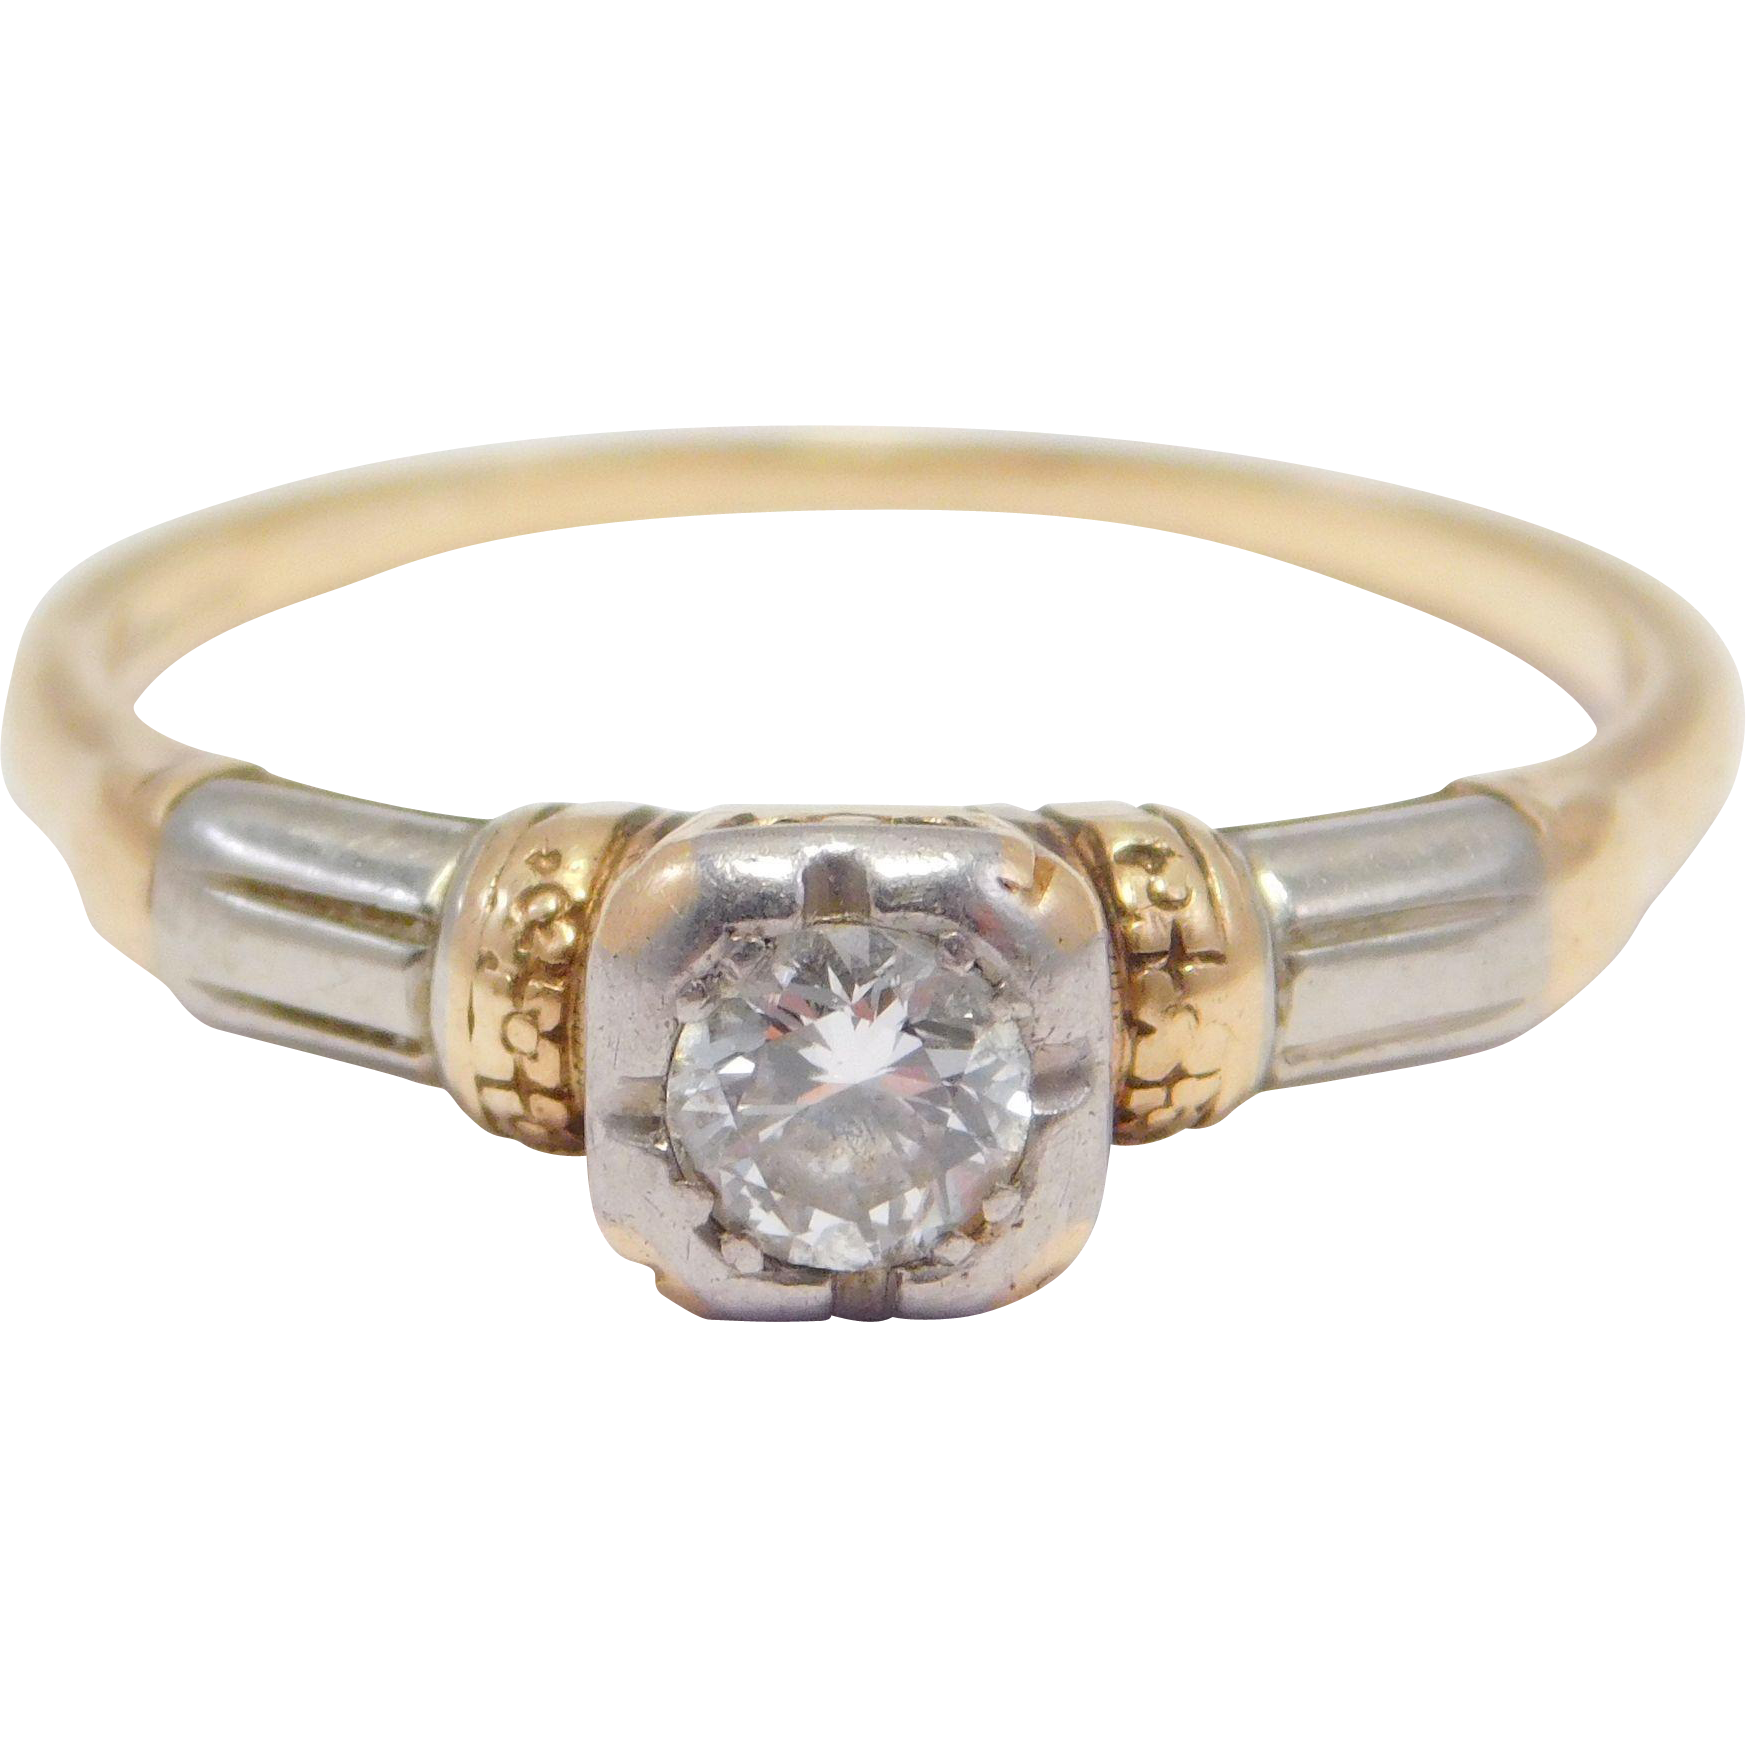 at engagement rings online shop pearl with collections jewelry divers rose diamonds ring maui freshwater peach gold in